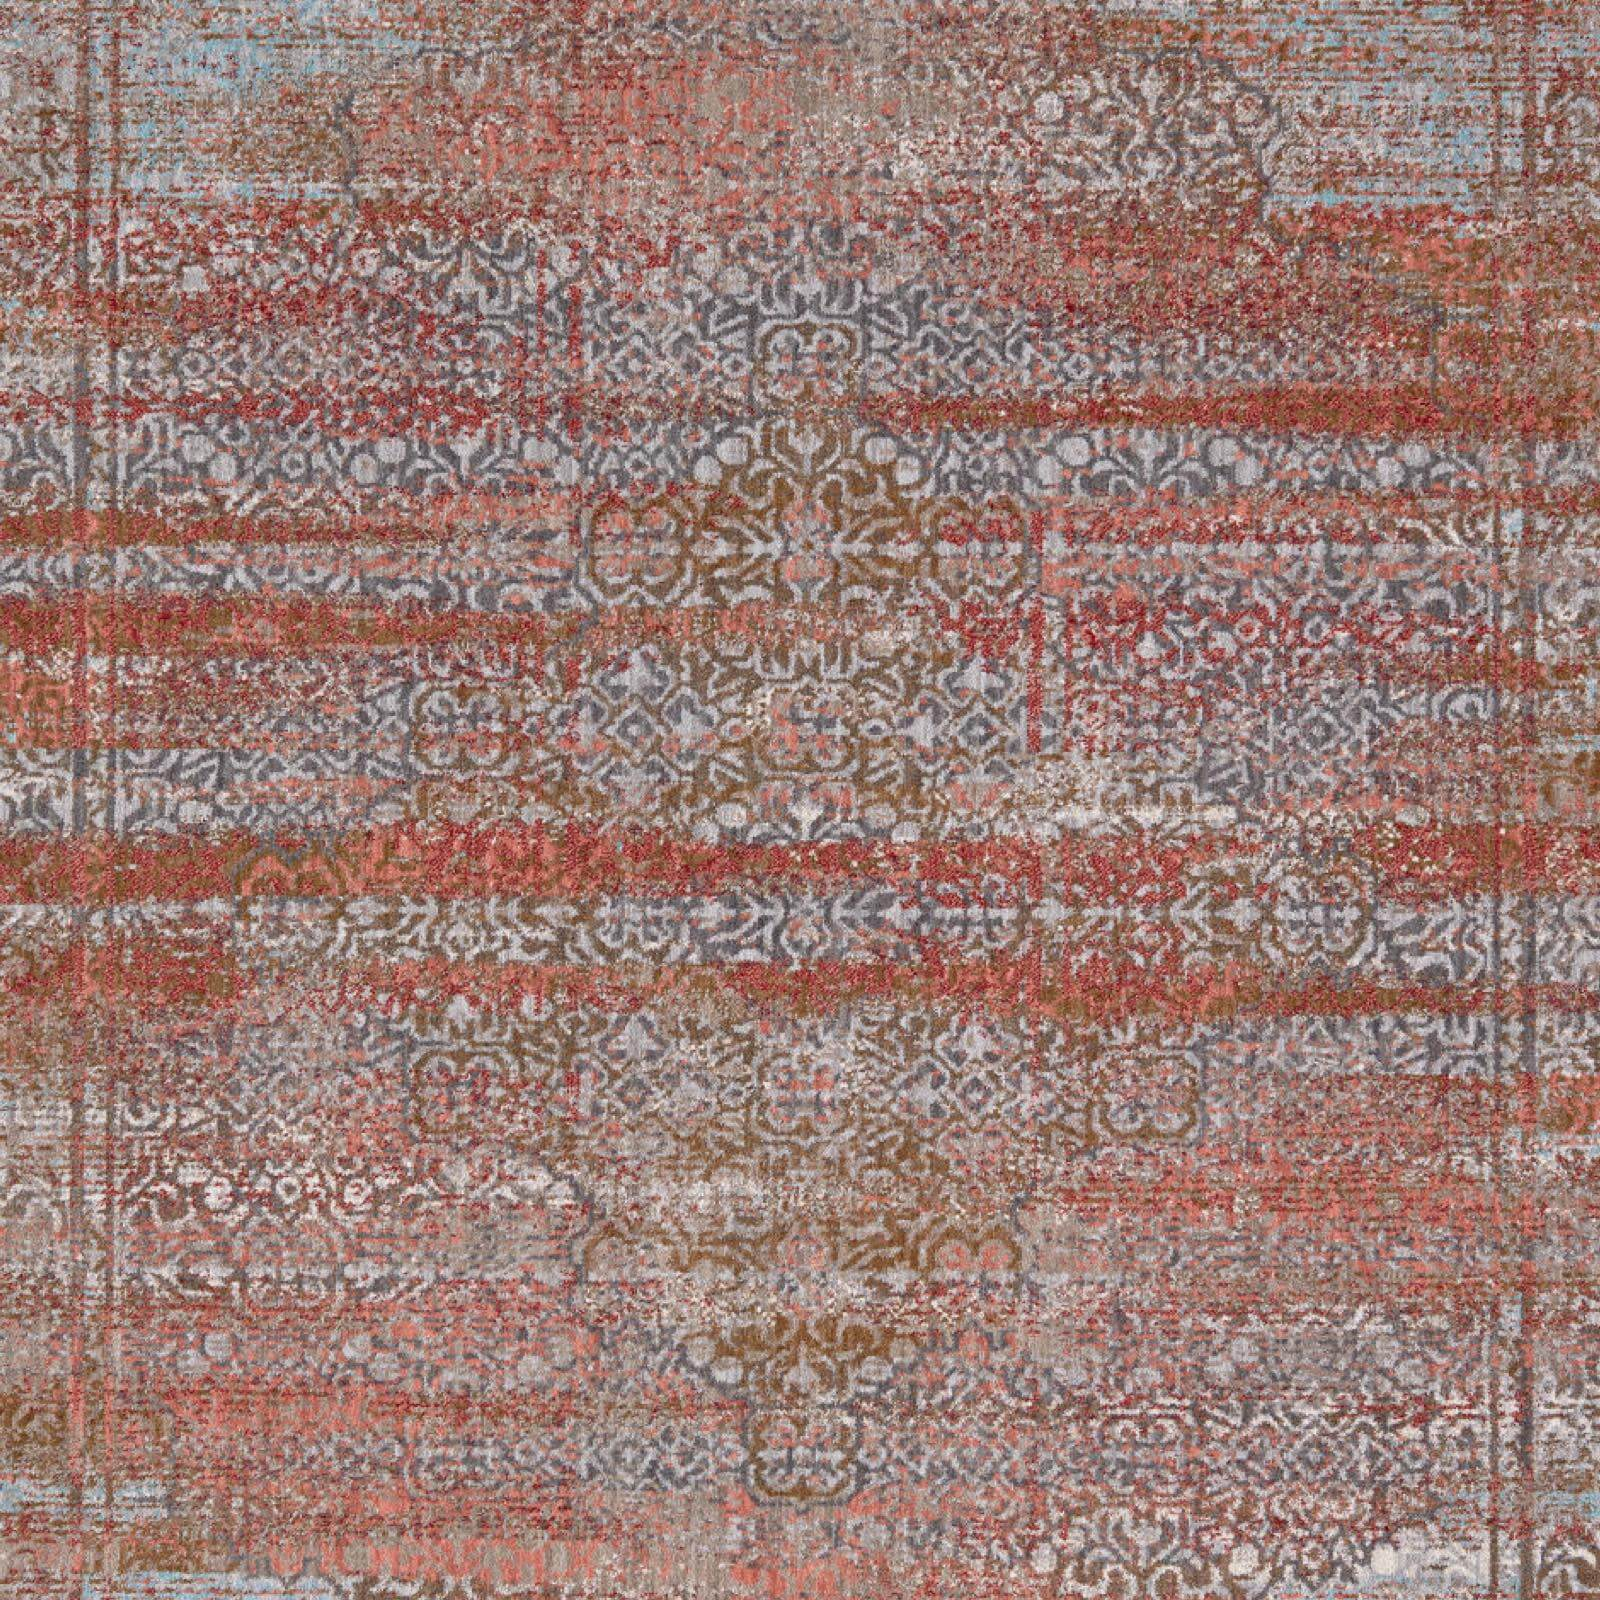 karastan_barnes_swatch | McSwain Carpet & Floors